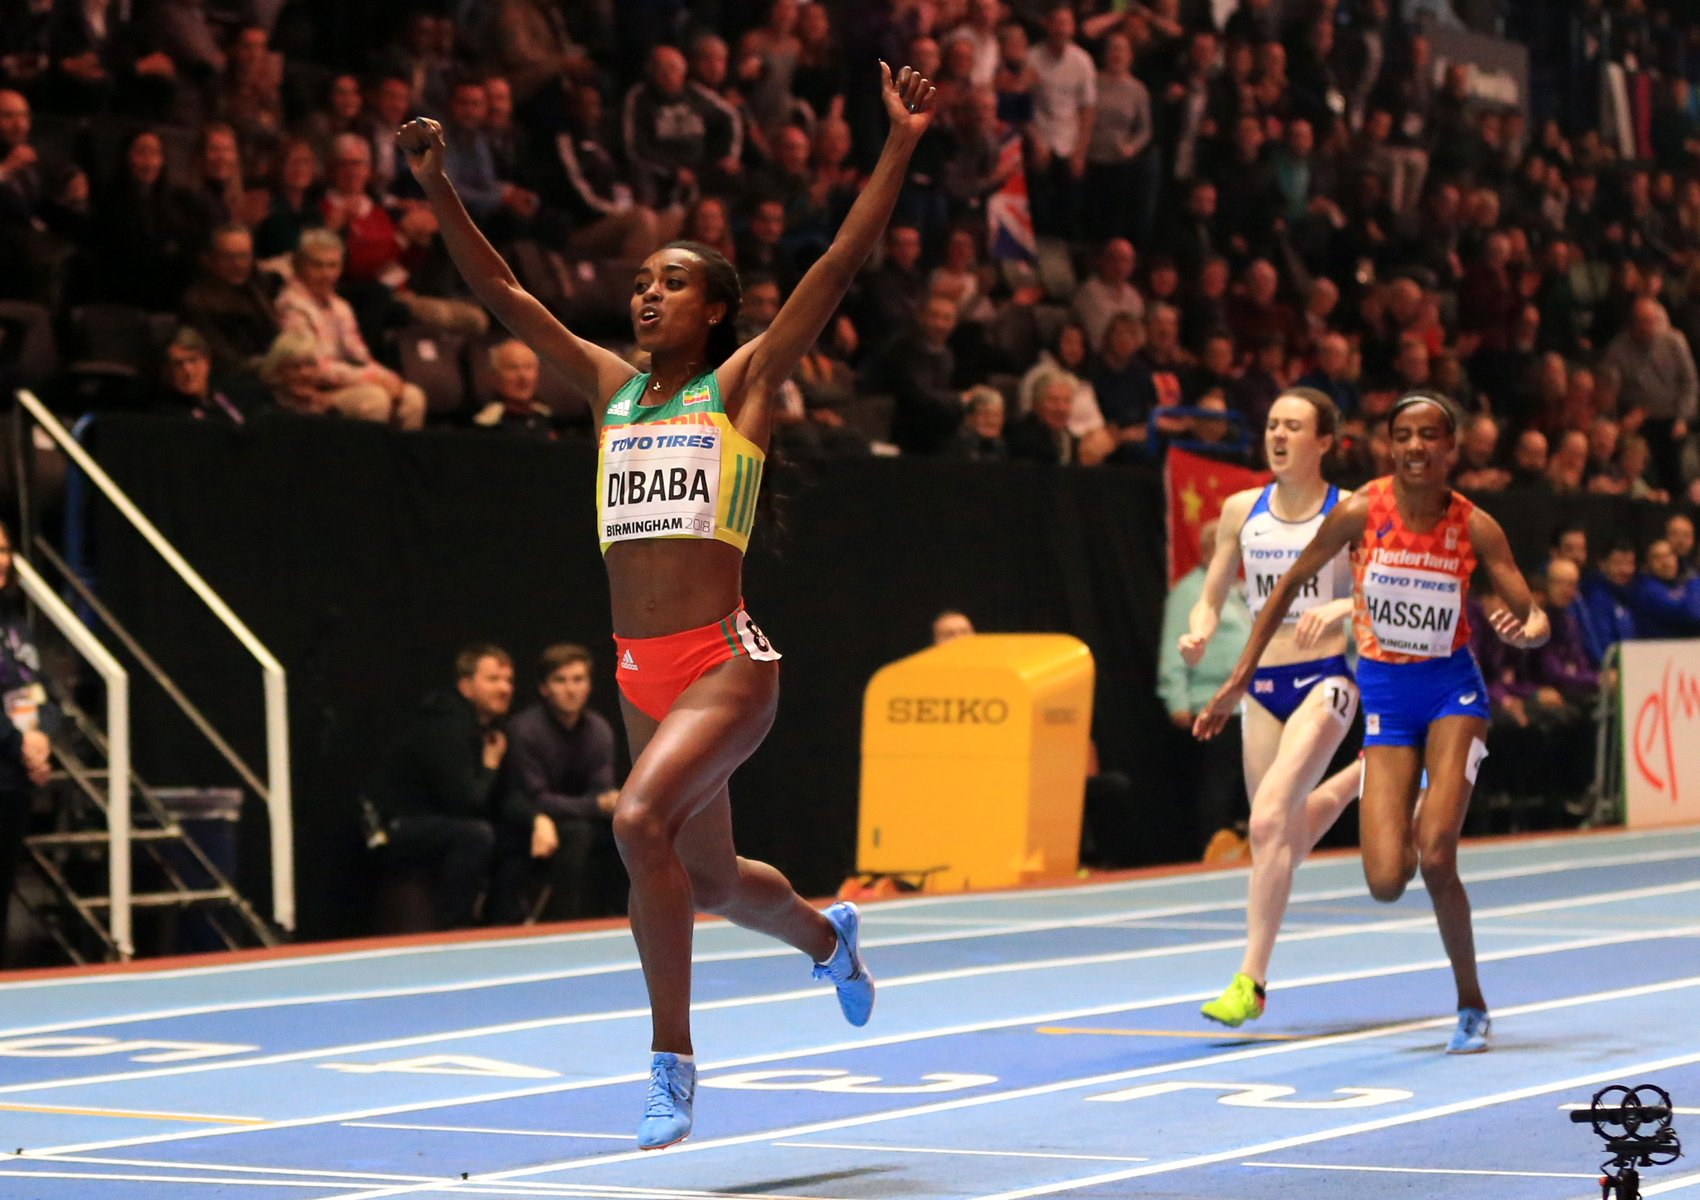 Genzebe Dibaba of Ethopia celebrates winning the womens 3000 metres final ahead of Sifan Hassan of Netherlands and Laura Muir of Great Britian on Day One of the IAAF World Indoor Championships at Arena Birmingham on March 1, 2018 in Birmingham, England. credit: Photo by Michael Steele/Getty Images for IAAF